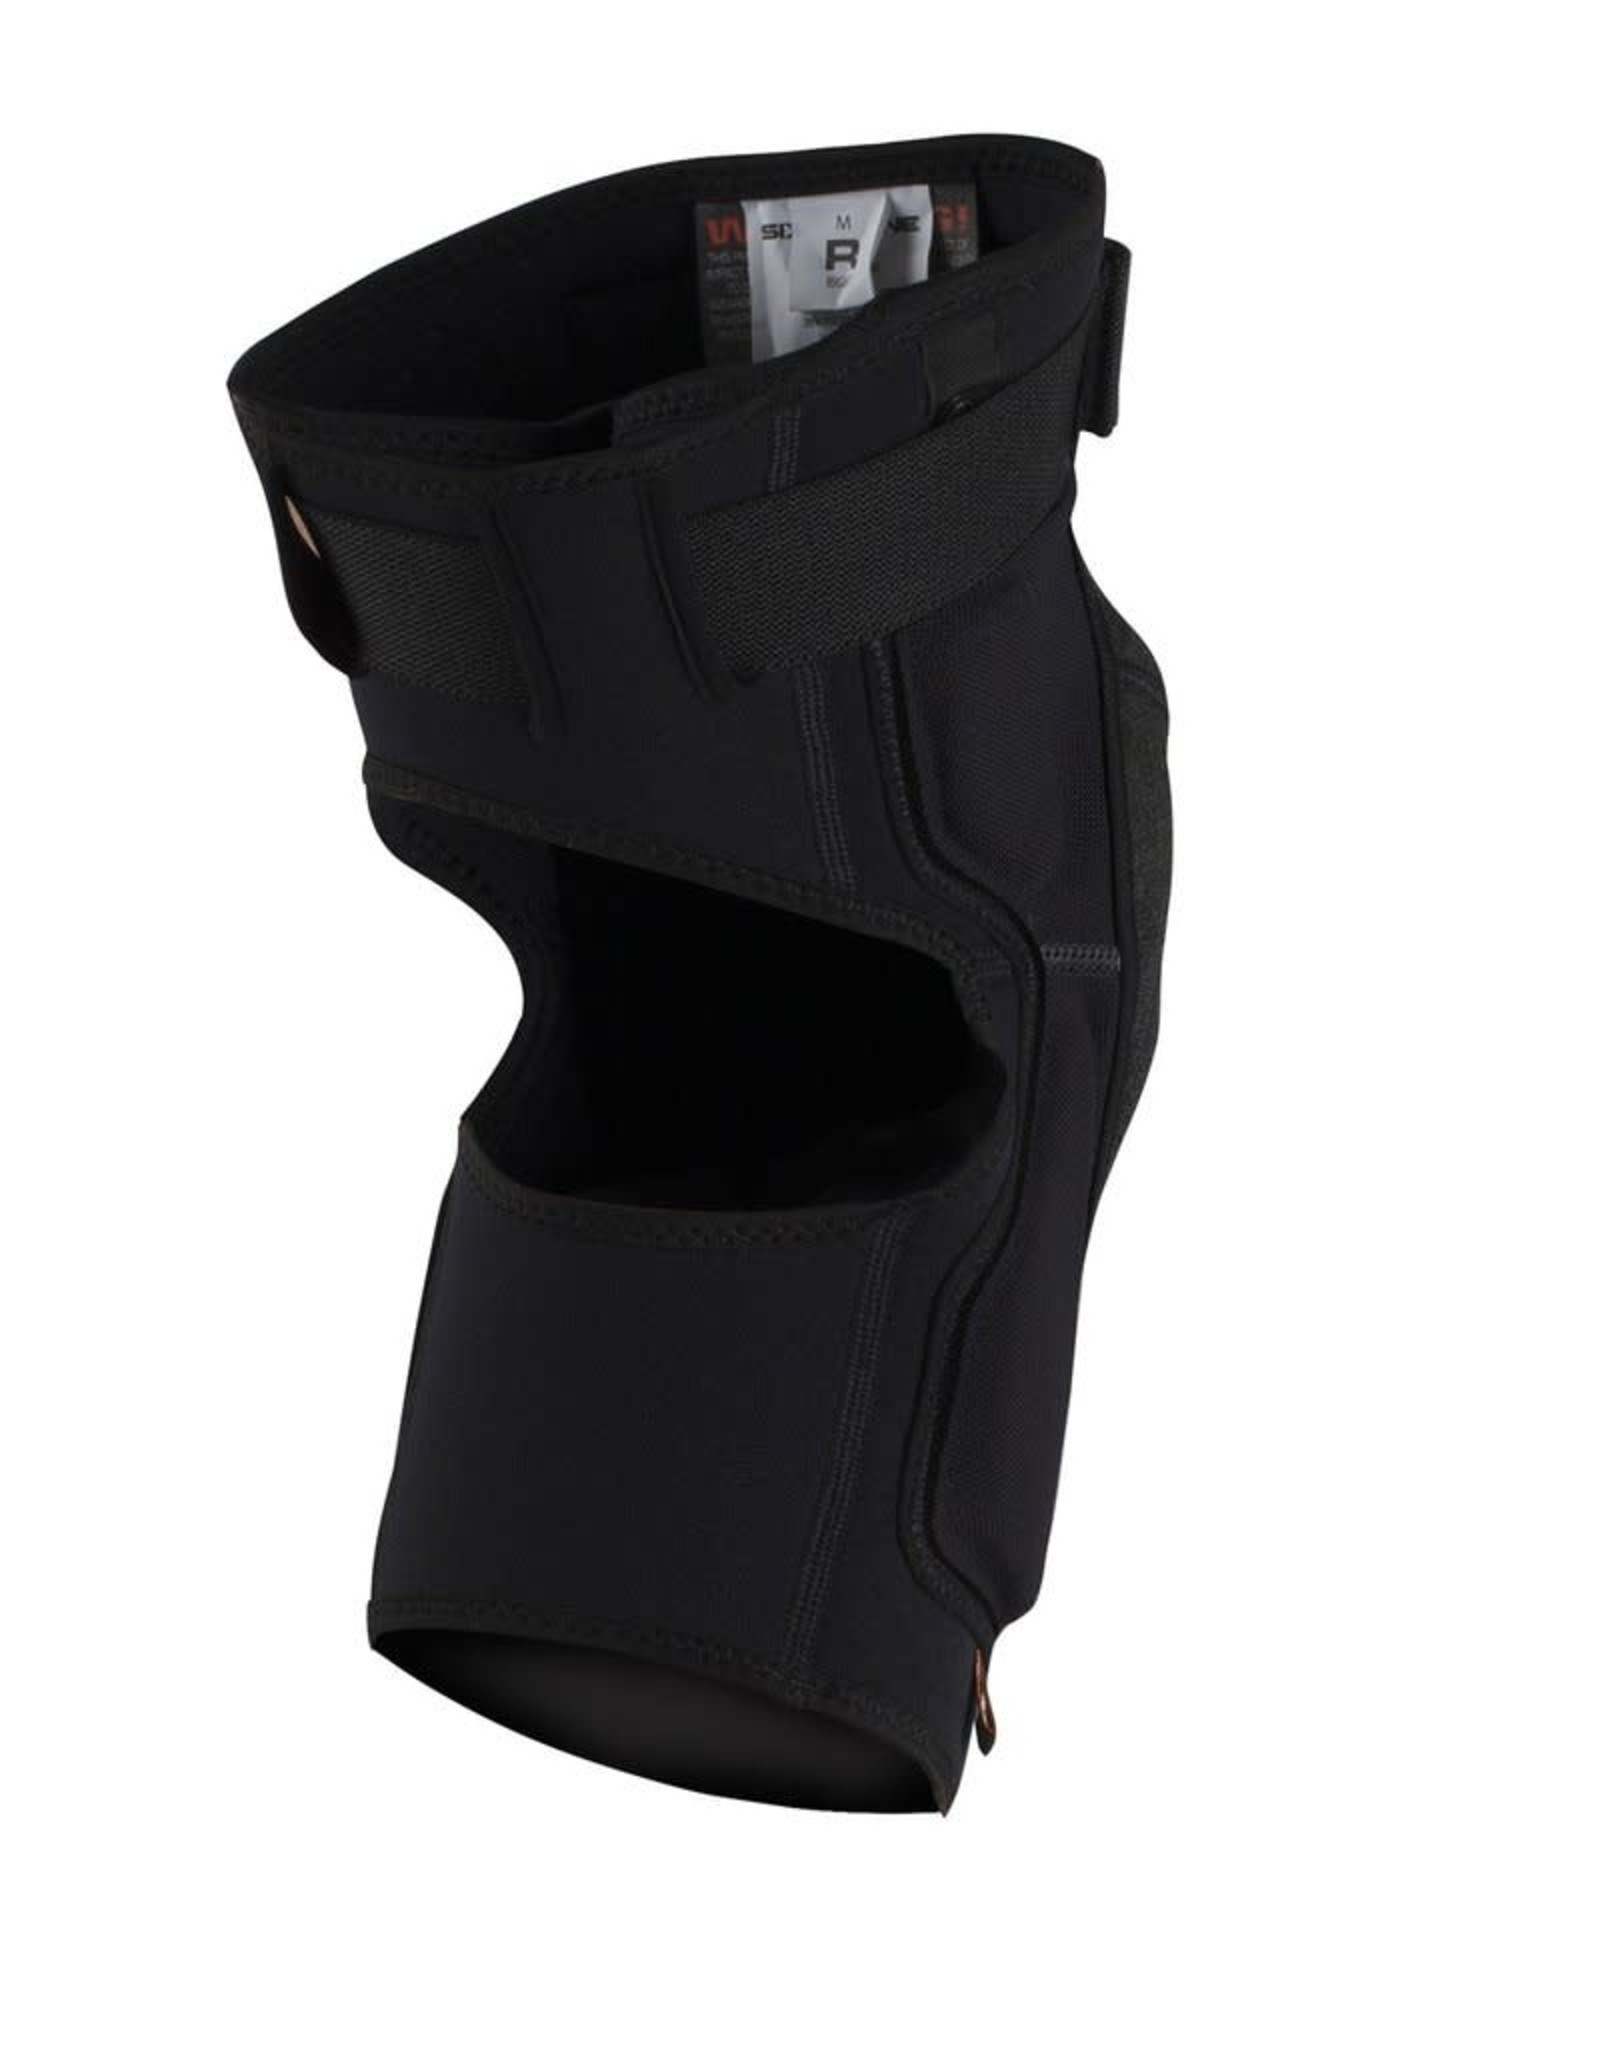 SixSixOne SixSixOne DBO Knee Guards, Black - S